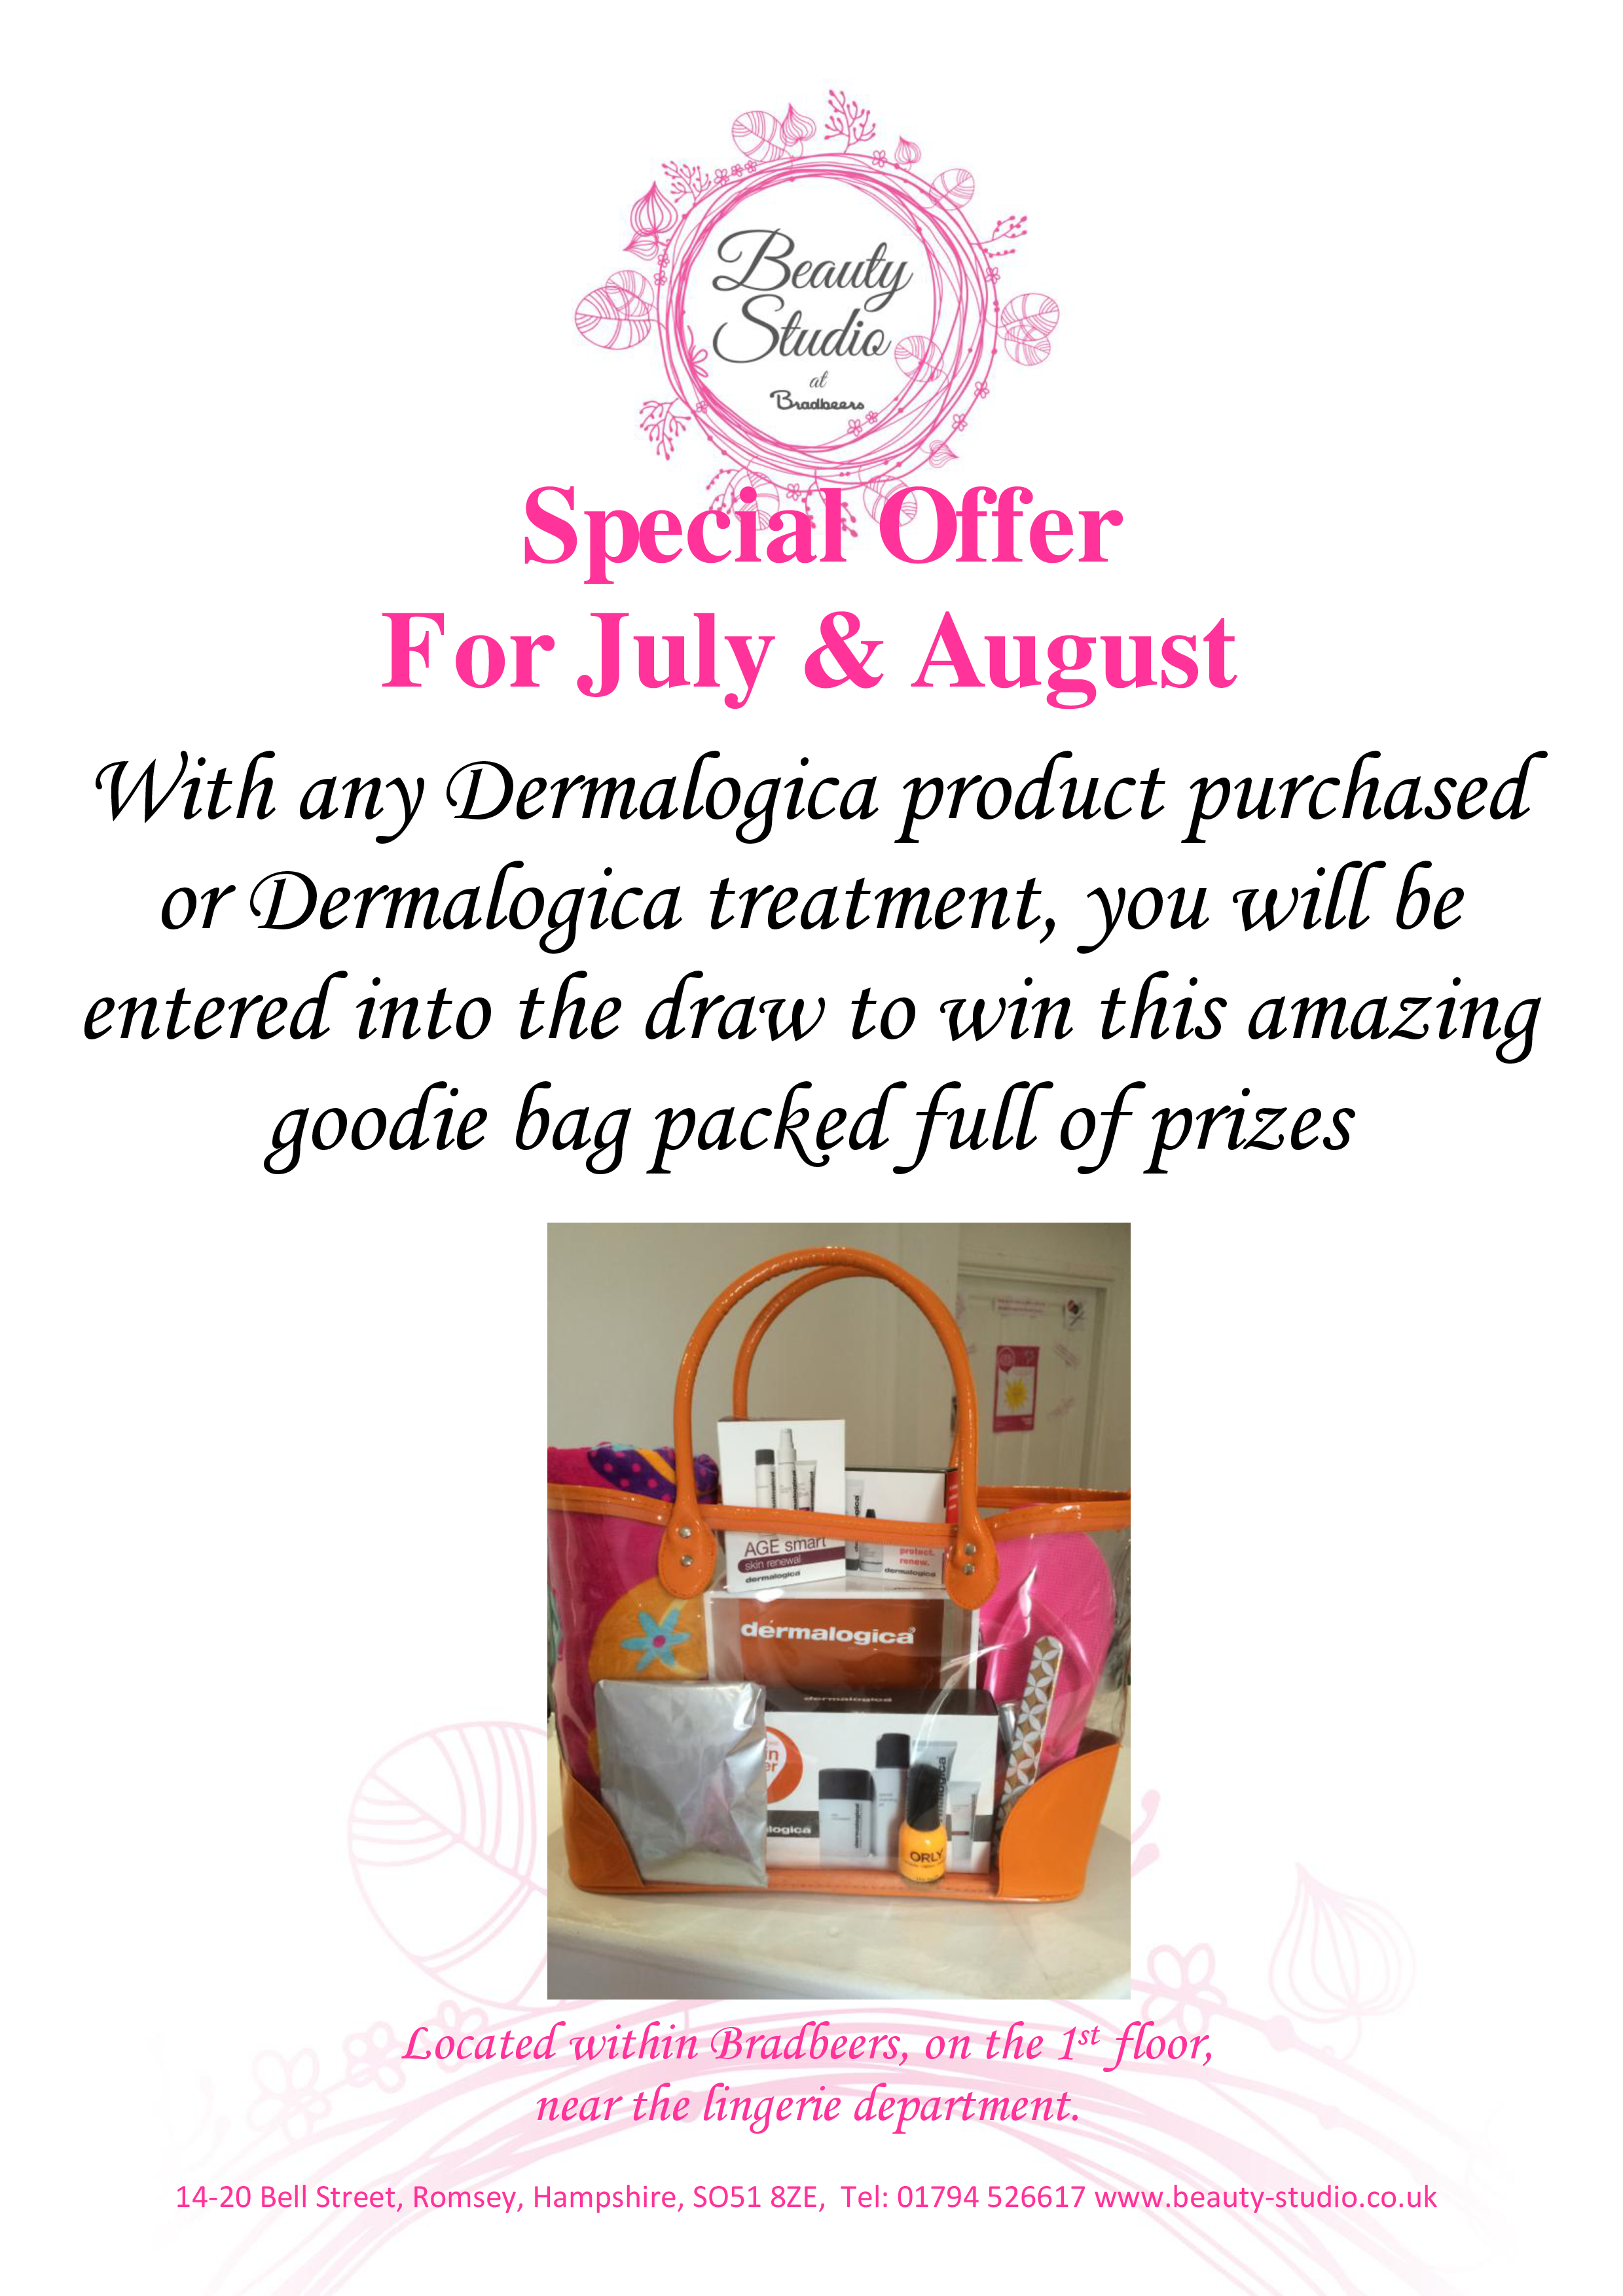 7. 8 July and August goodie bag prize